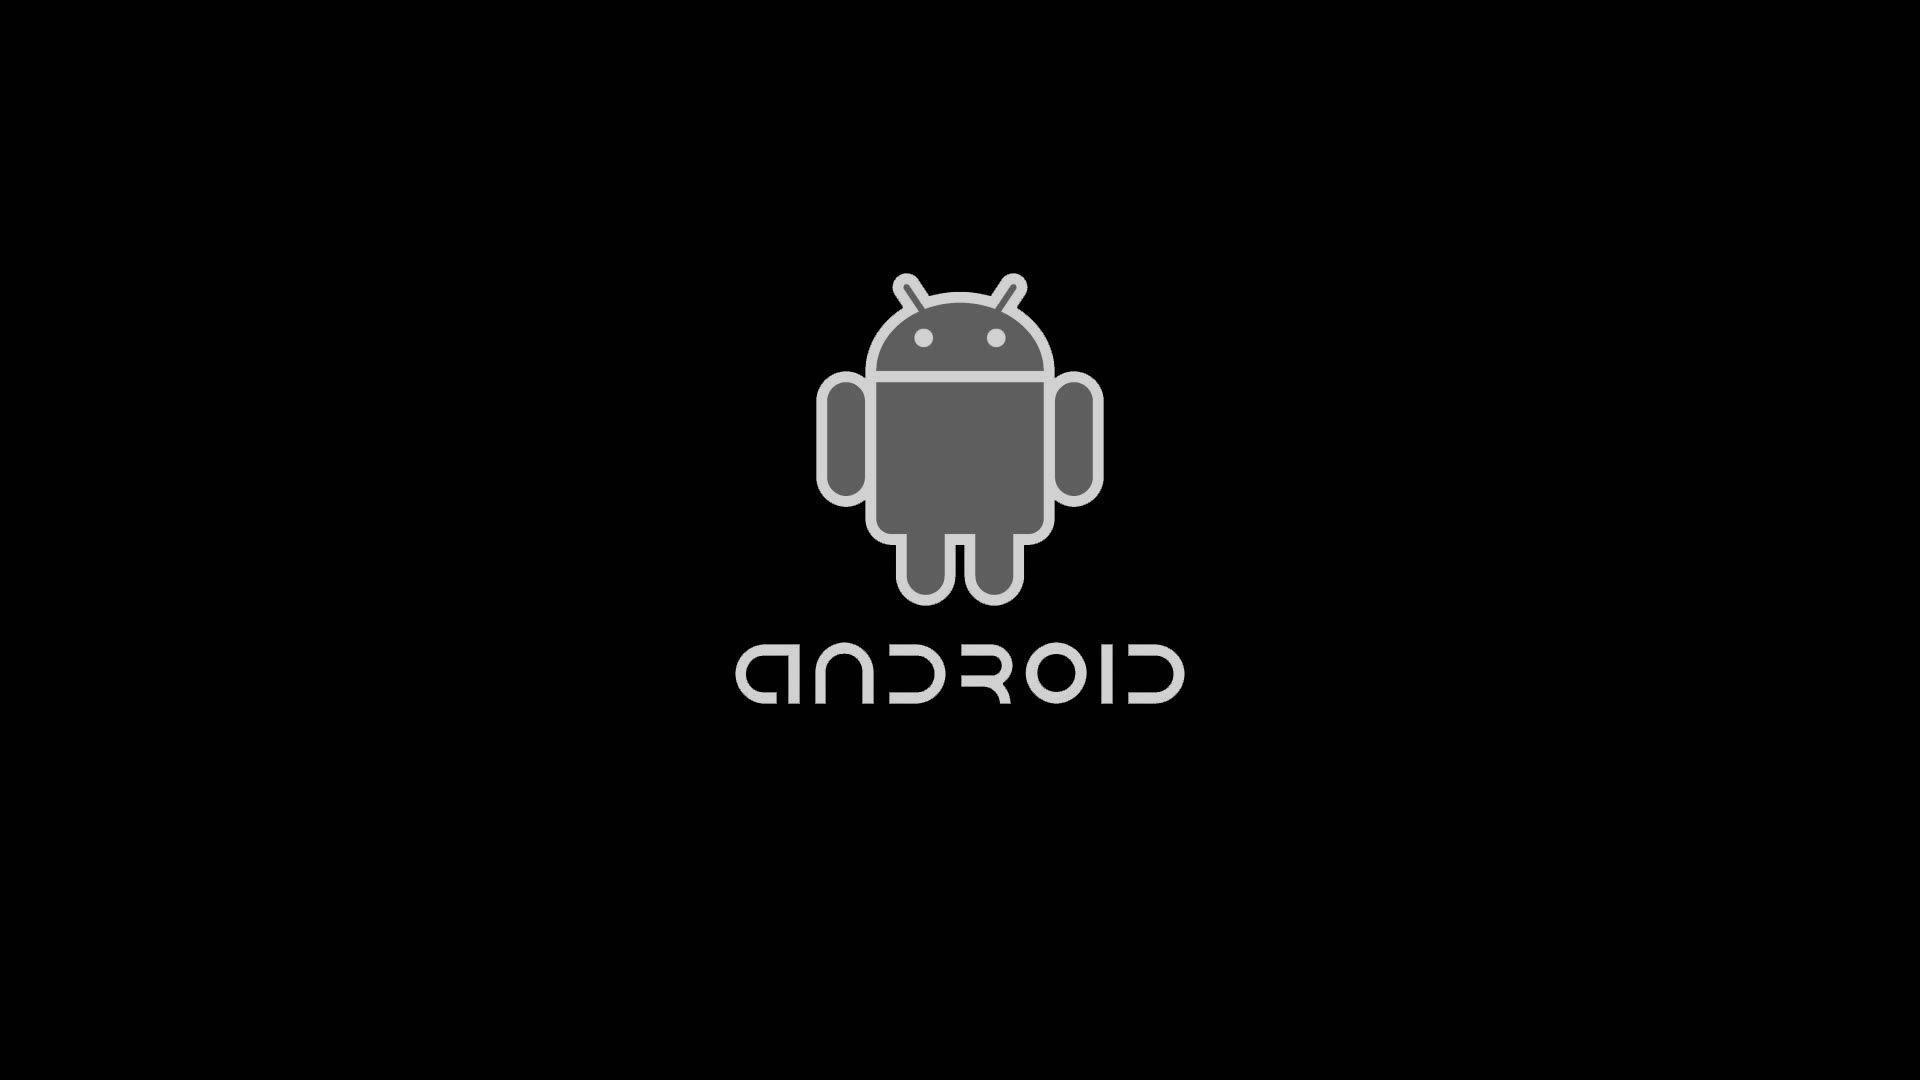 android black wallpaper hd desktop 5277 hdwidescreens